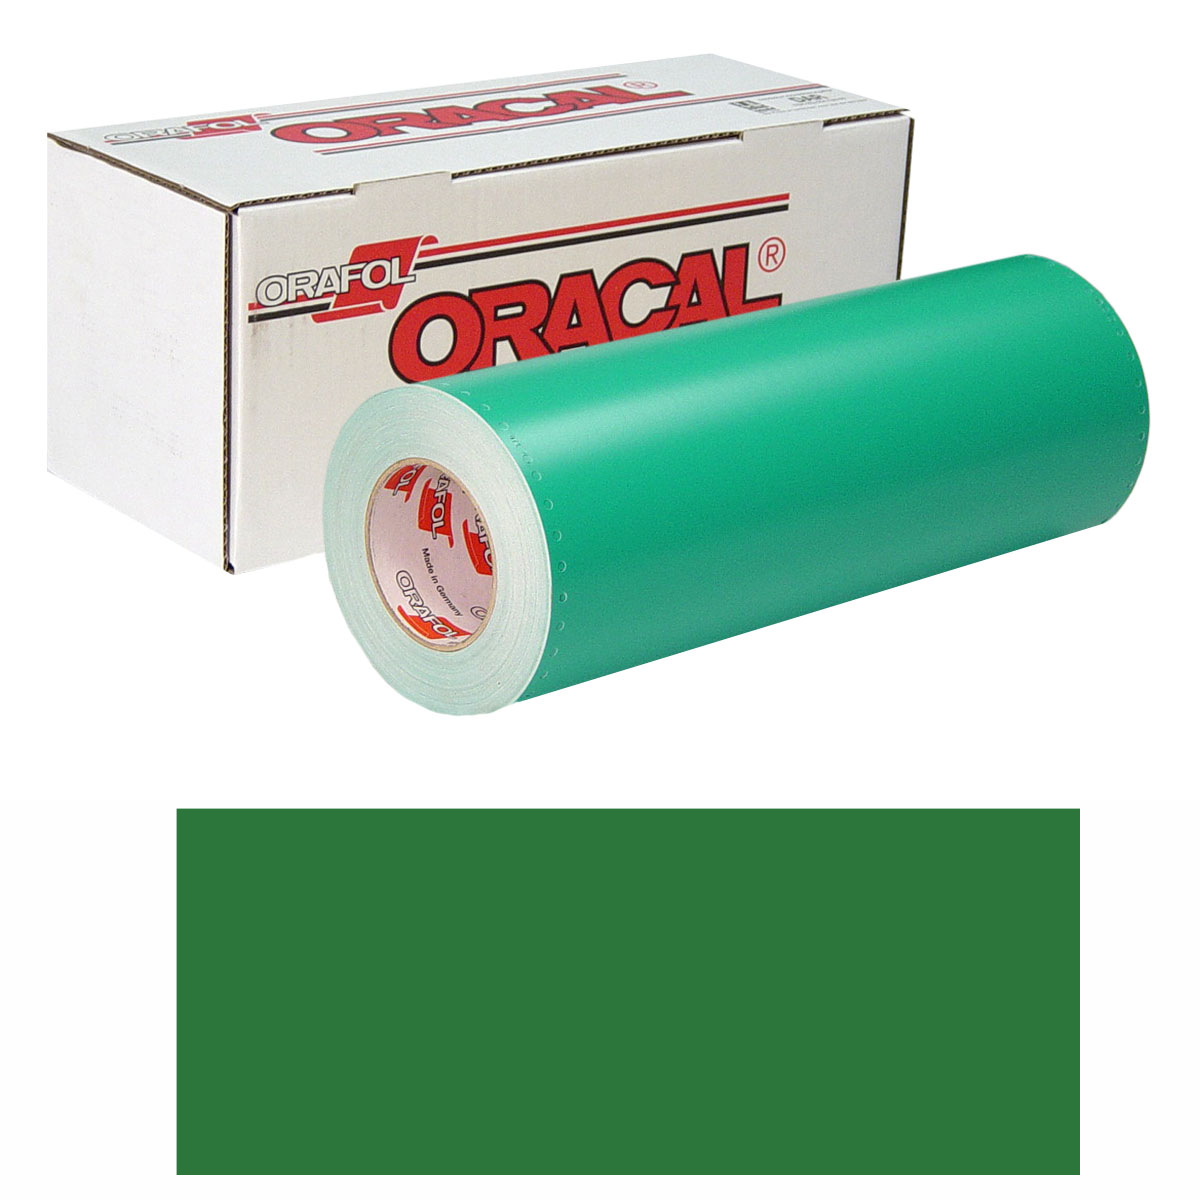 ORACAL 8500 30in X 10yd 614 Reed Green